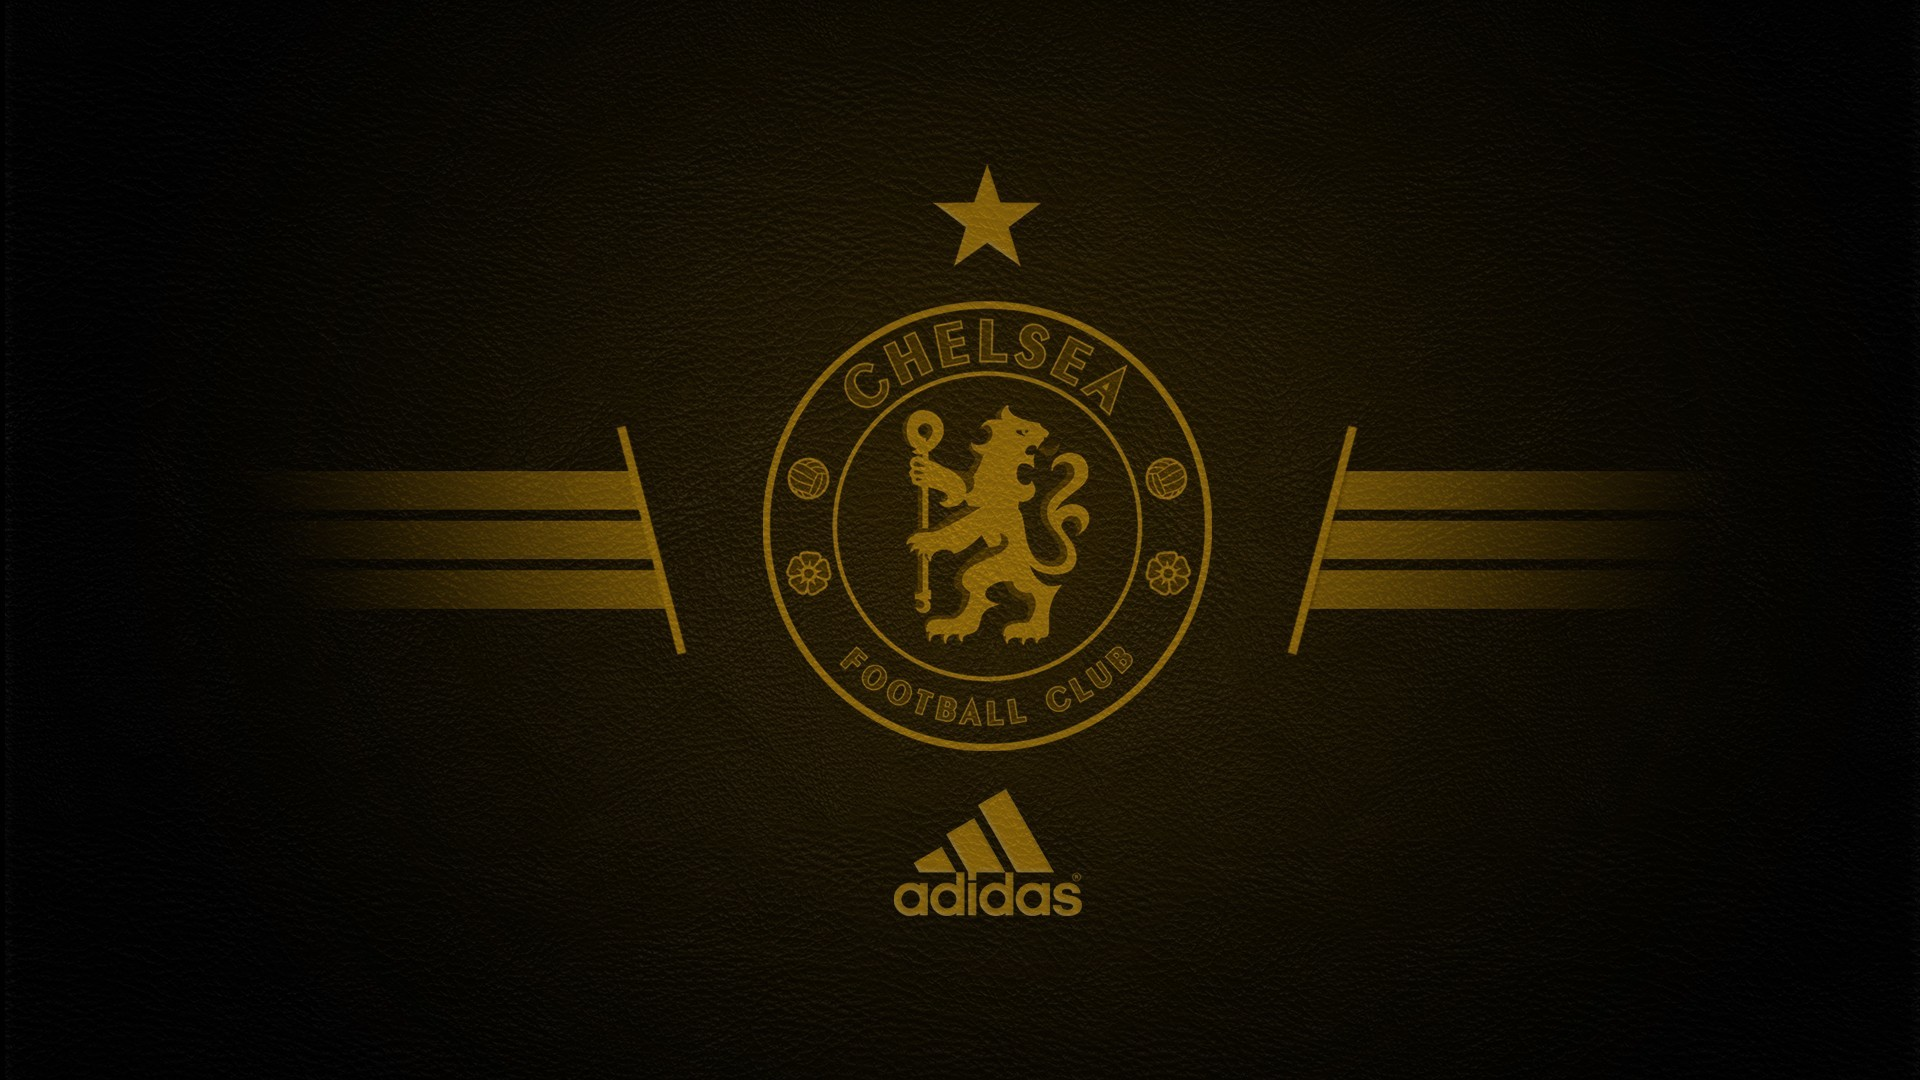 Chelsea Football Club HD Wallpaper 2013-2014 | Football News And … |  football | Pinterest | Chelsea football and Chelsea